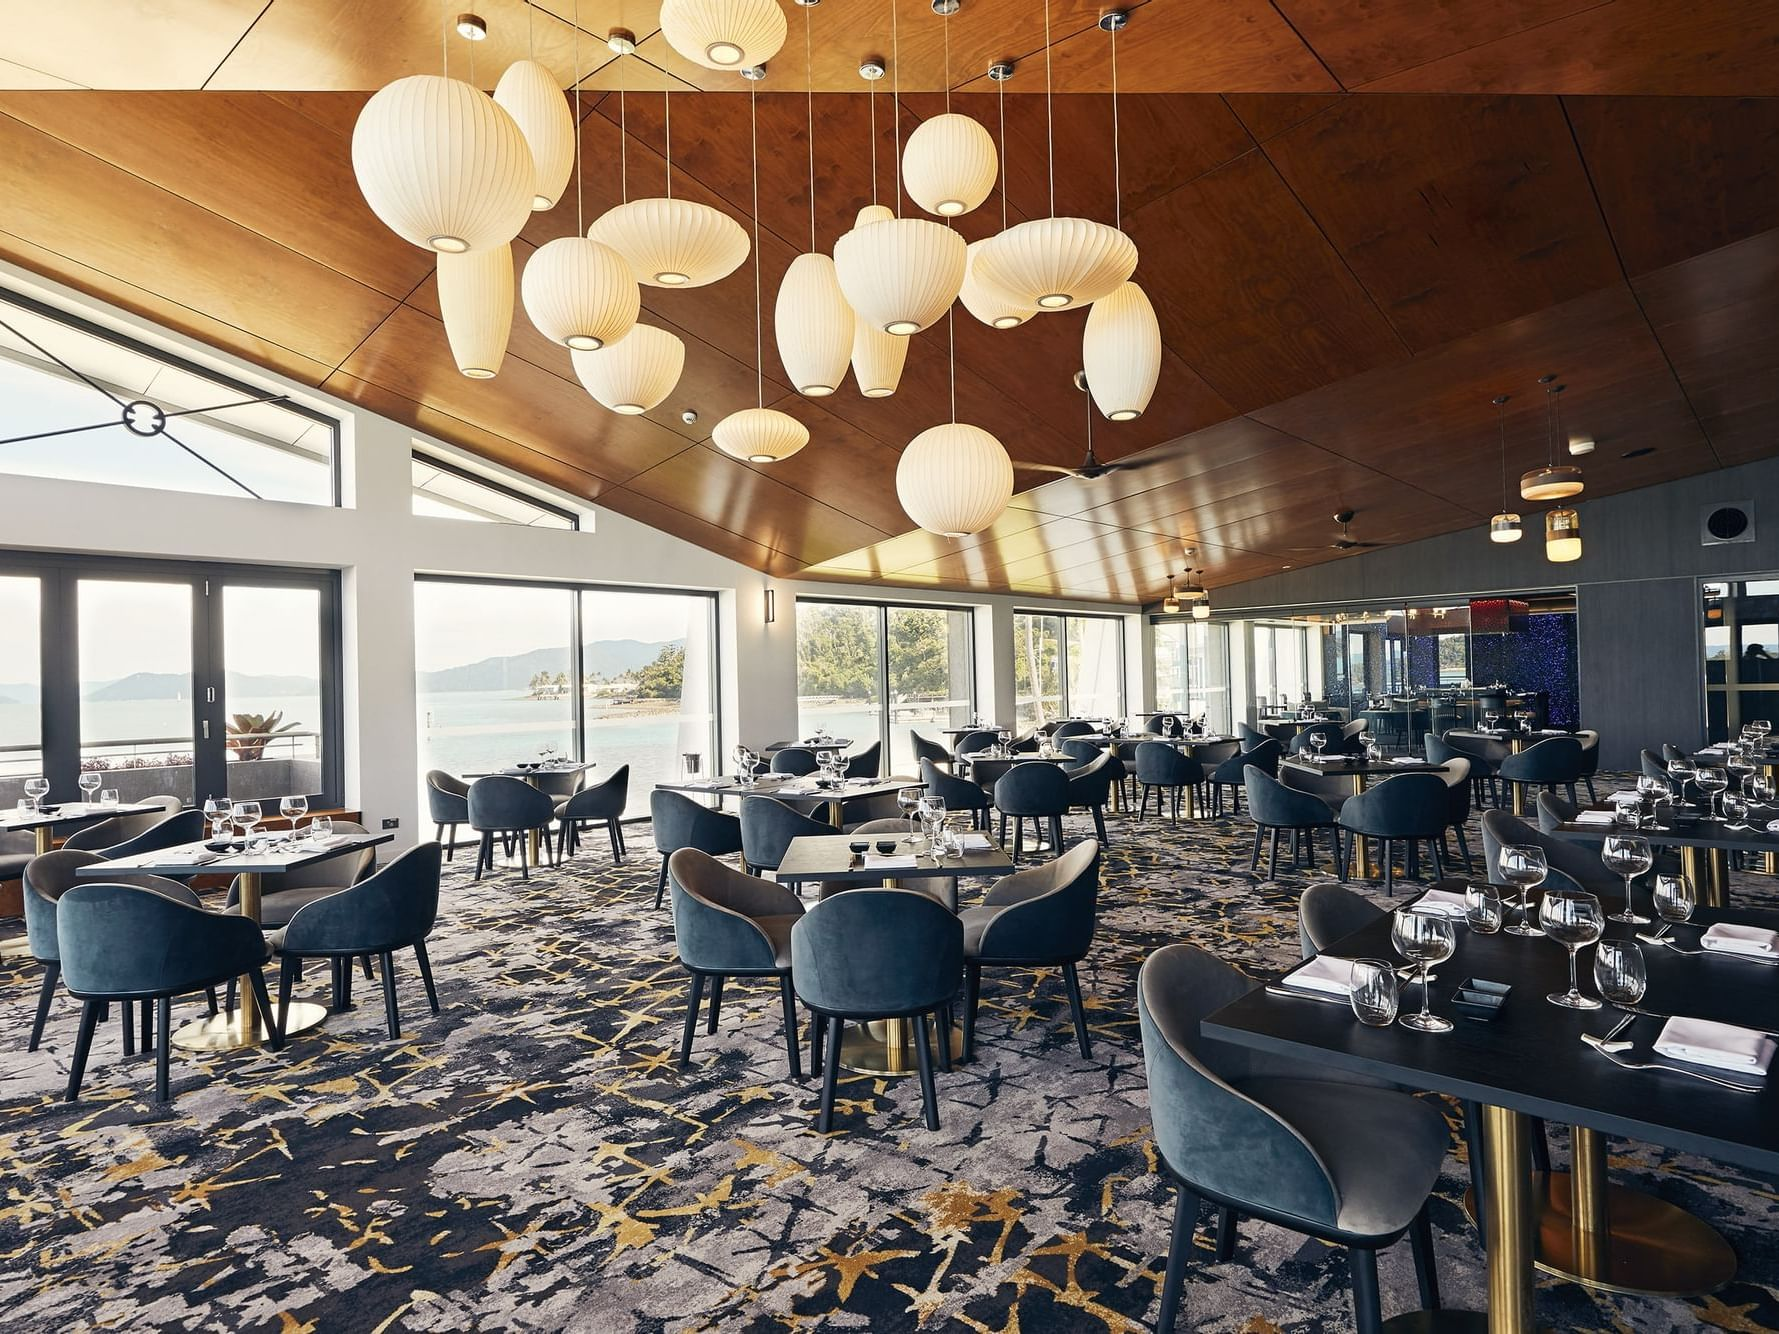 Infinity Restaurant with sea view at Daydream Island Resort